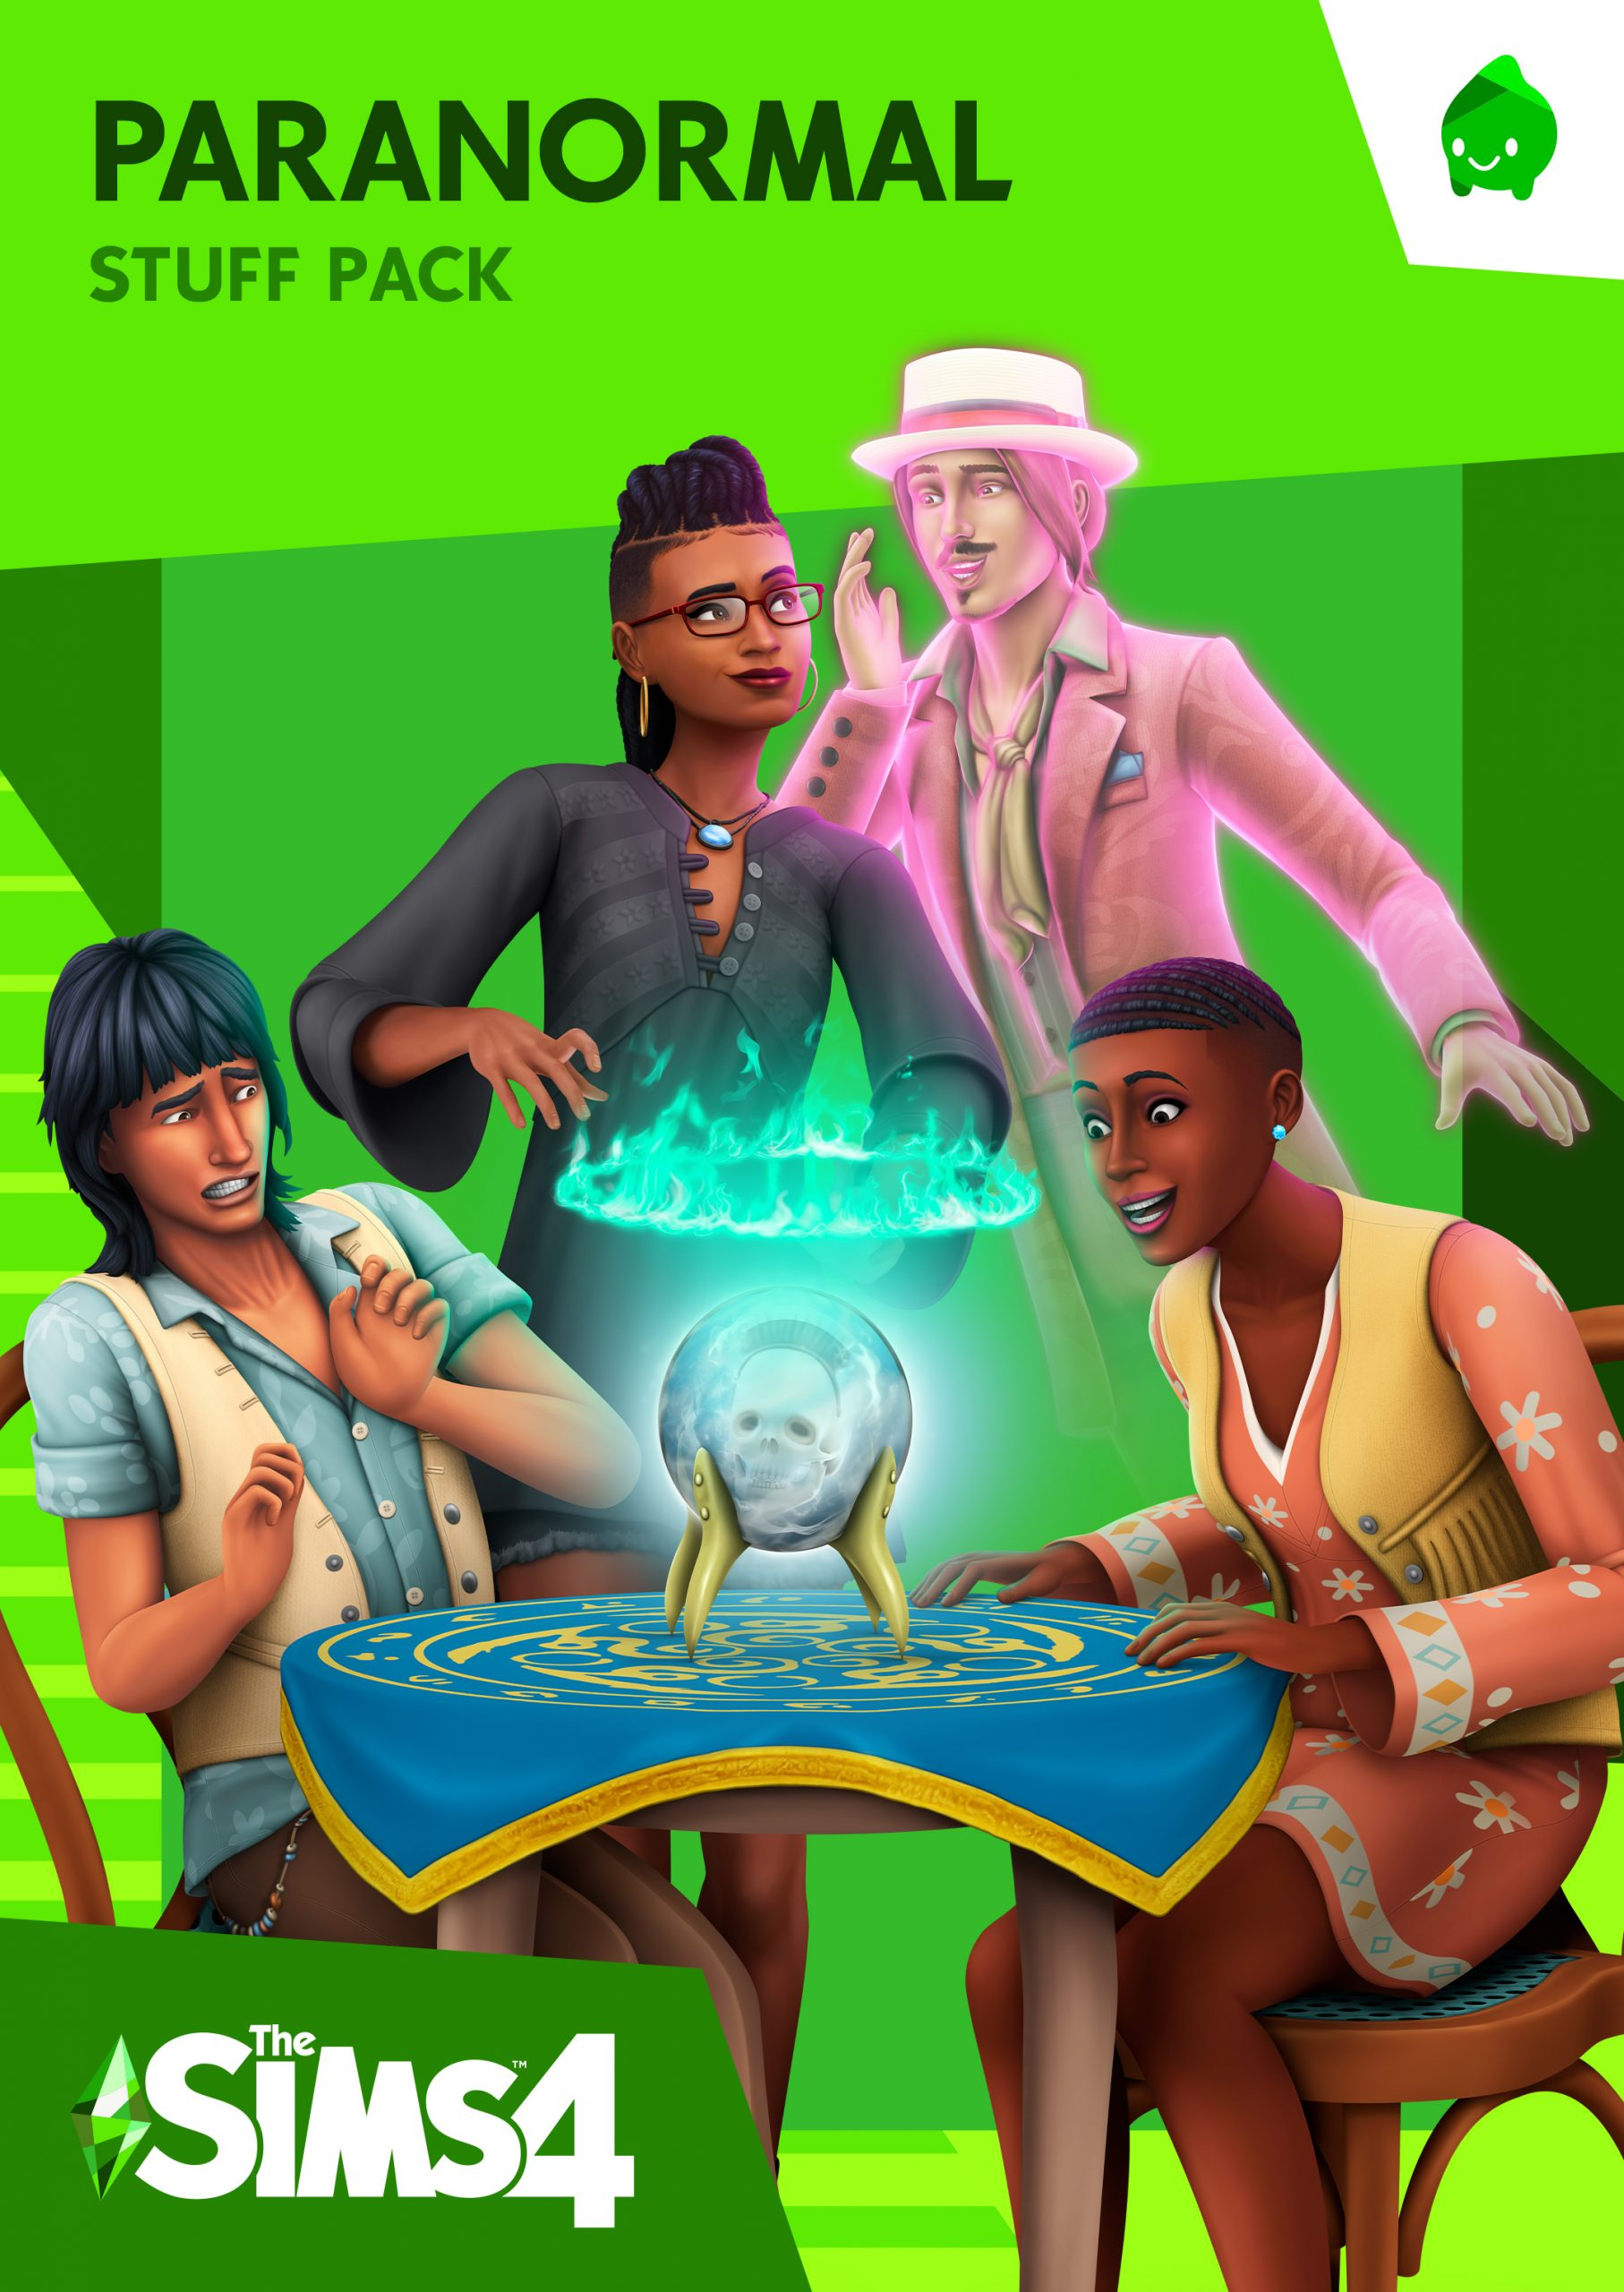 The-Sims-4-Paranormal-Stuff-Pack-Serial-Key-Generator